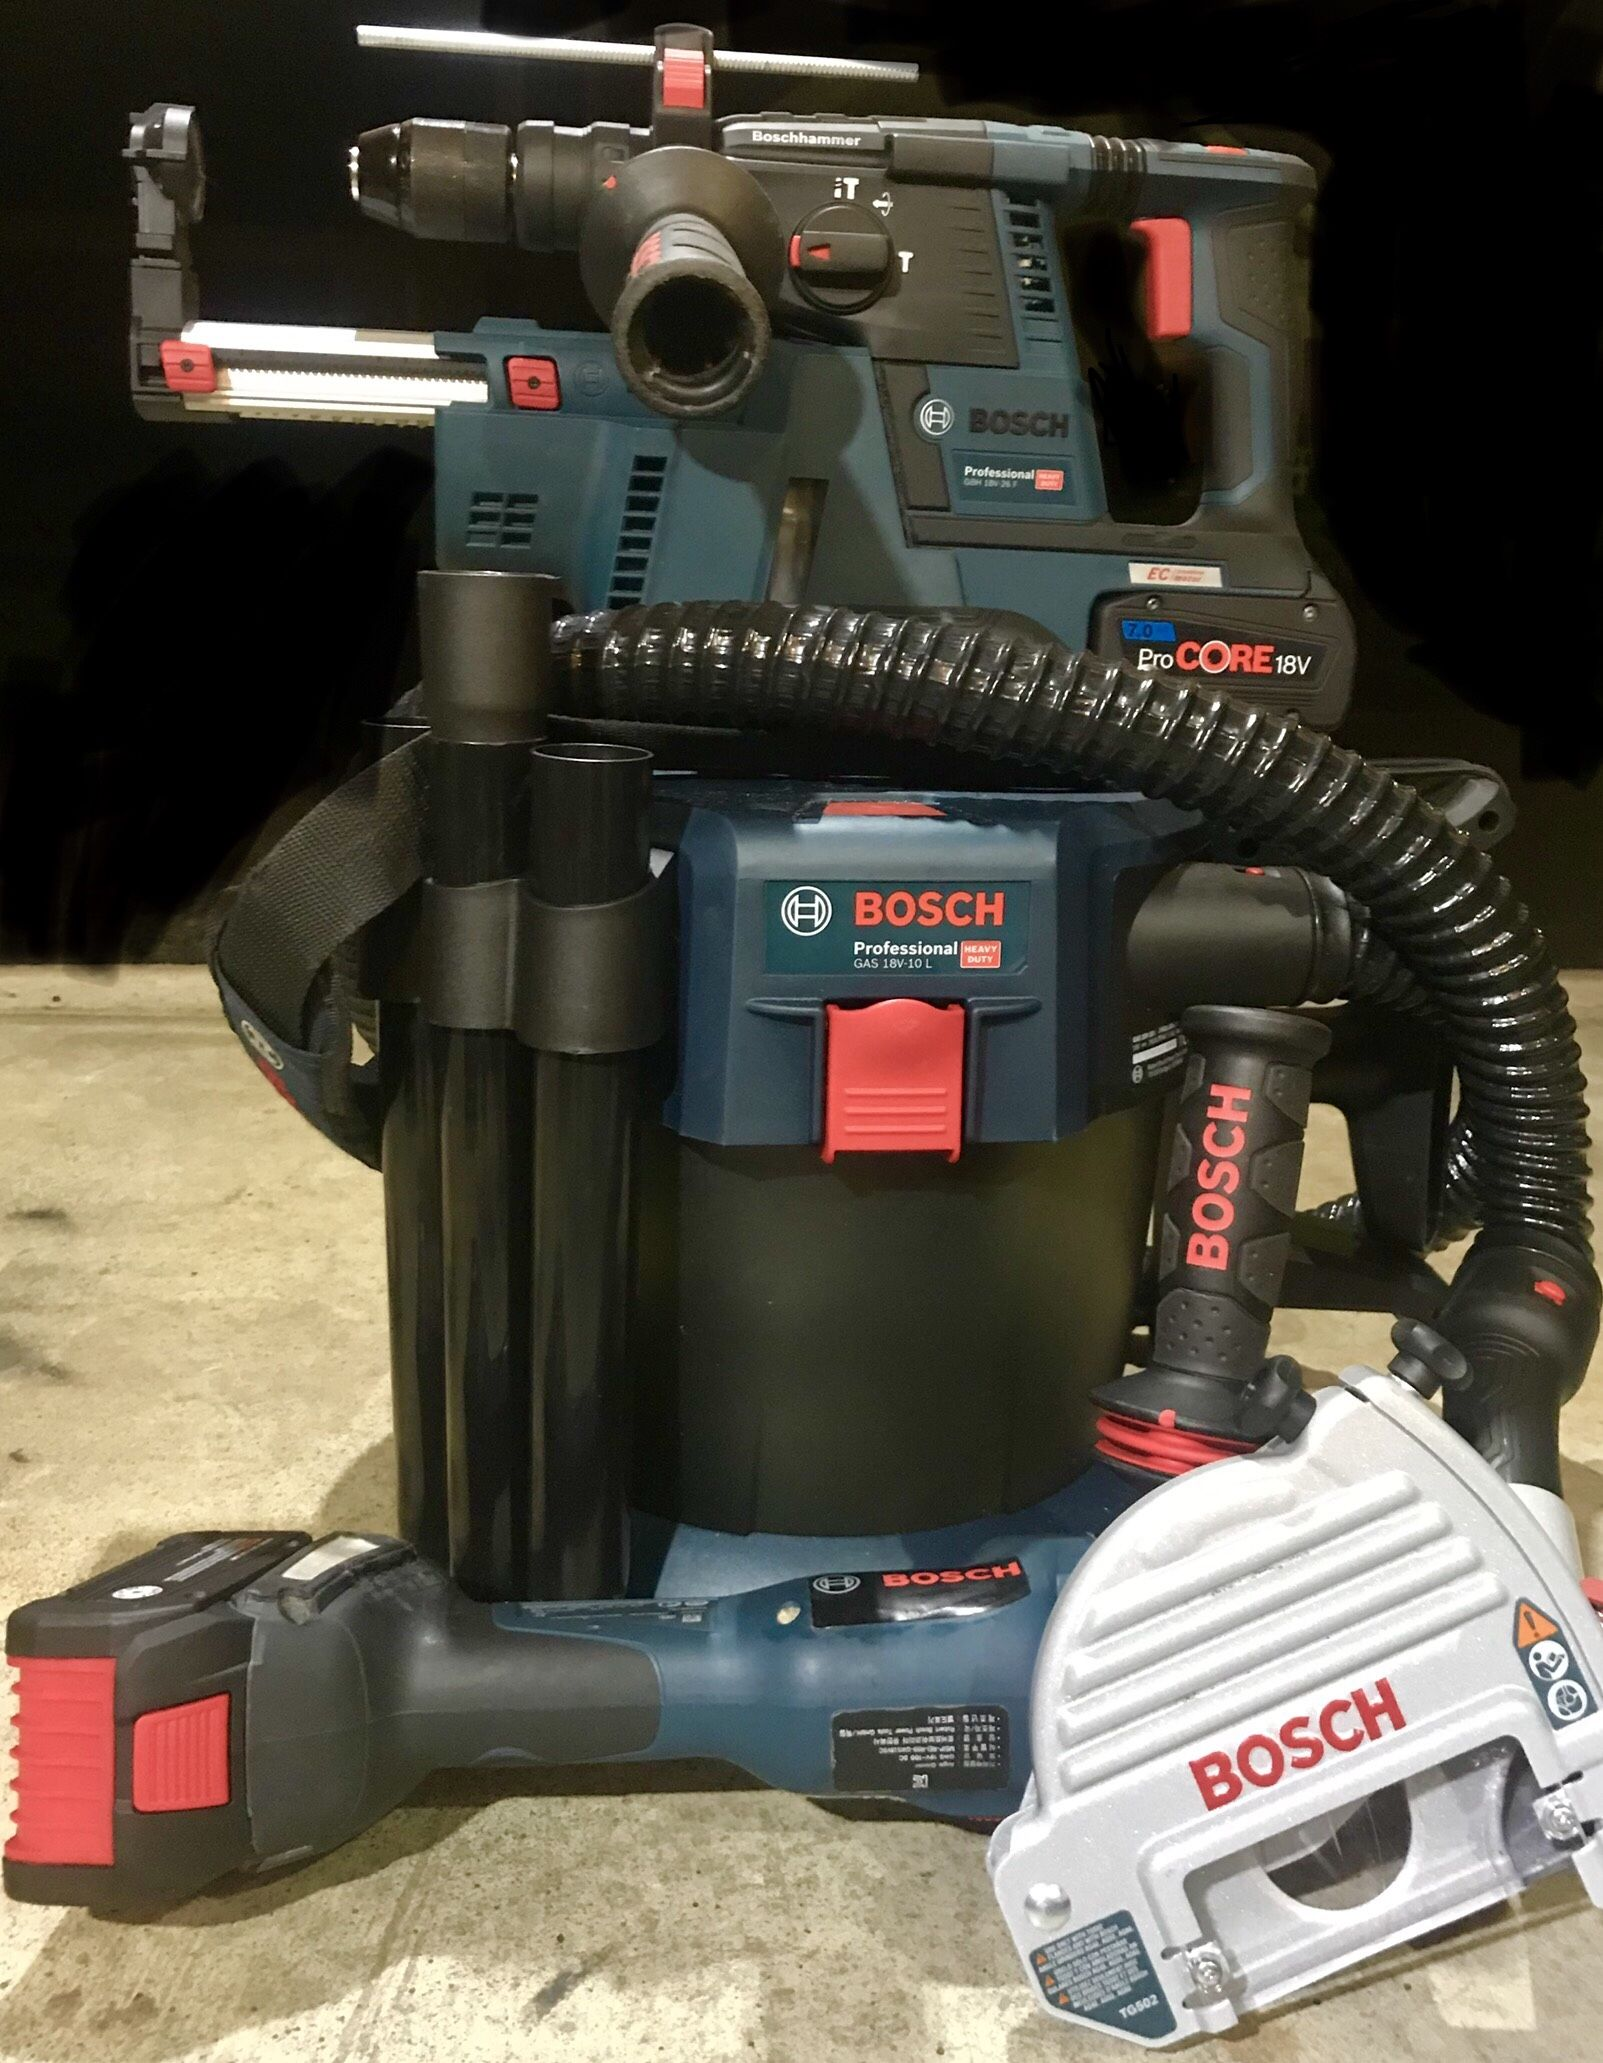 Pin by Bosch tool guy on Bosch tools in 2019 | Bosch tools, Power